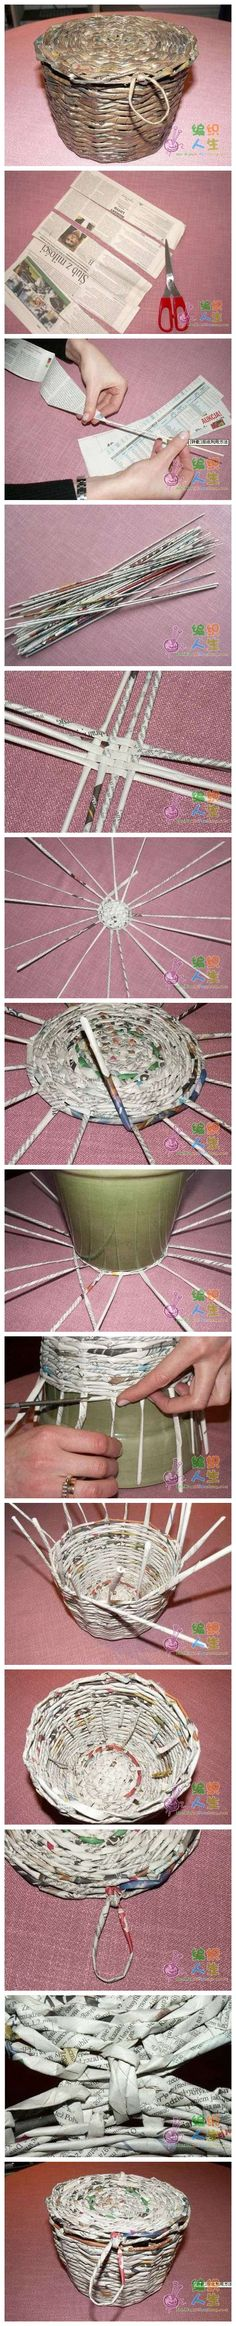 A basket from newspaper. #tutorial